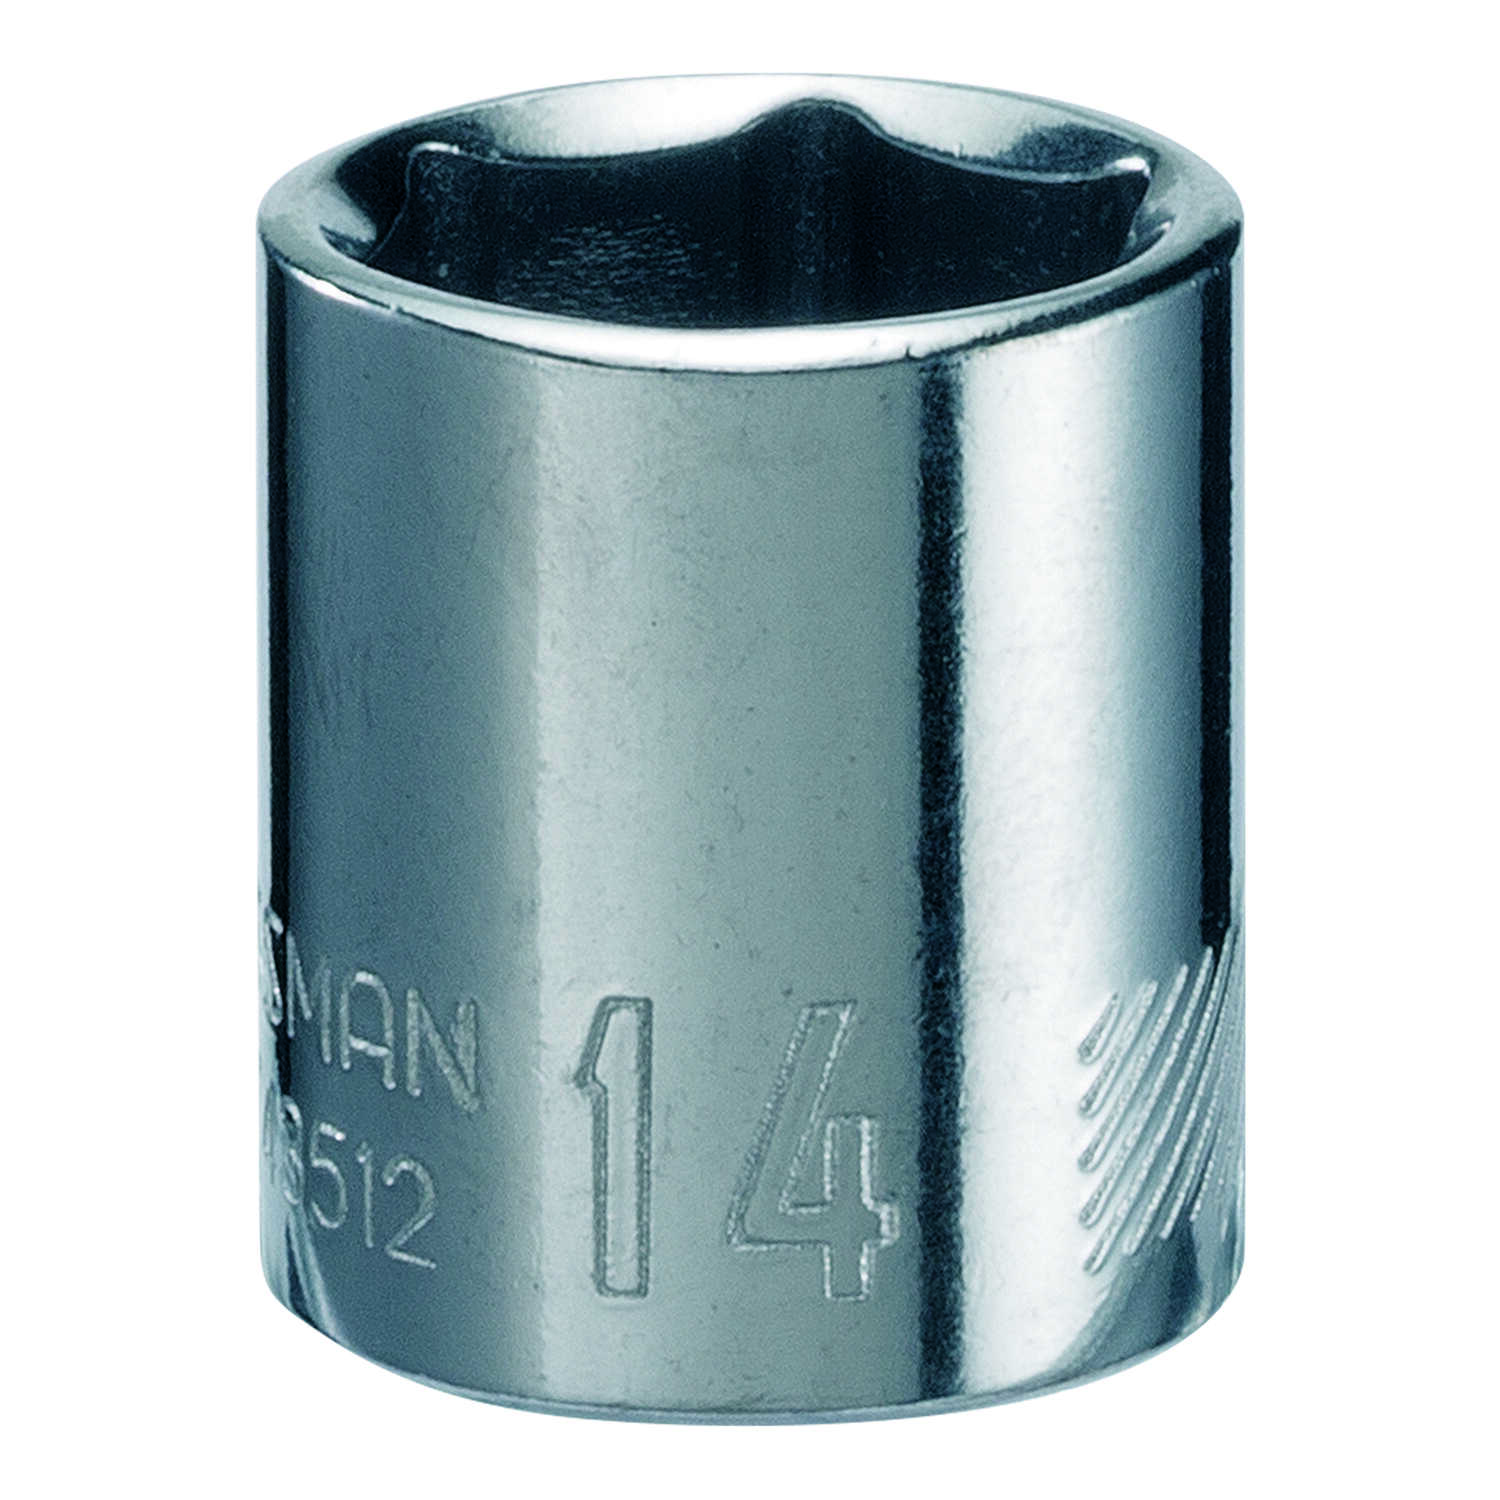 Craftsman  14 mm  x 1/4 in. drive  Metric  6 Point Standard  Socket  1 pc.